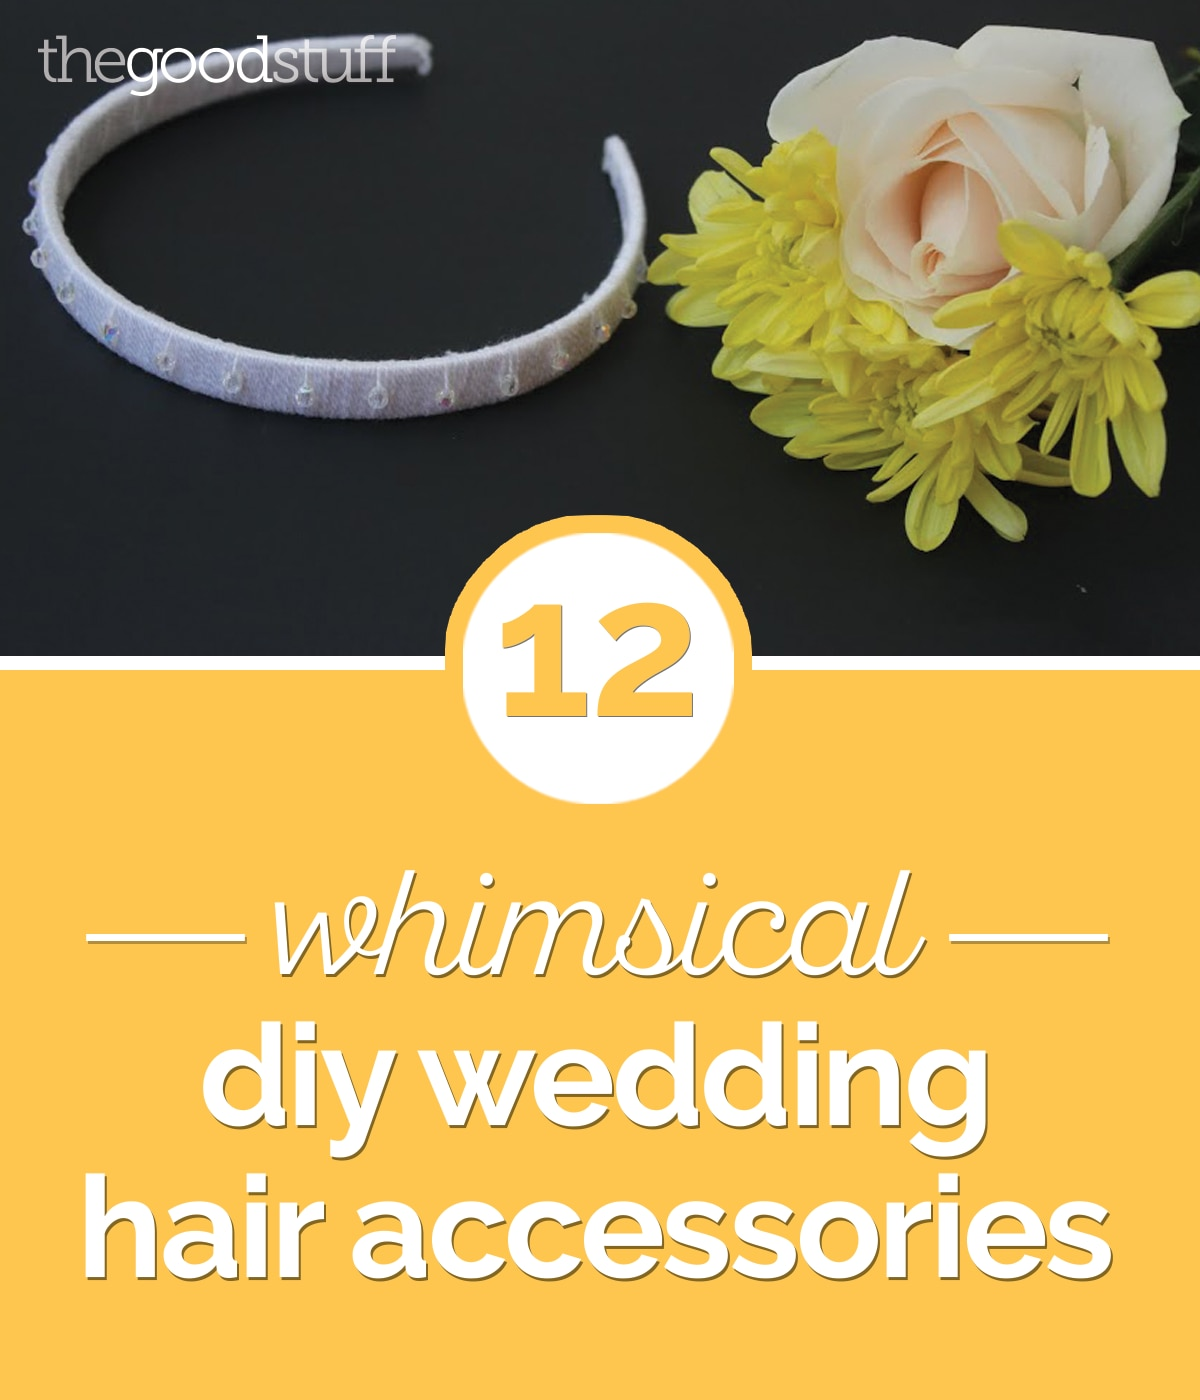 12 Whimsical DIY Wedding Hair Accessories | thegoodstuff